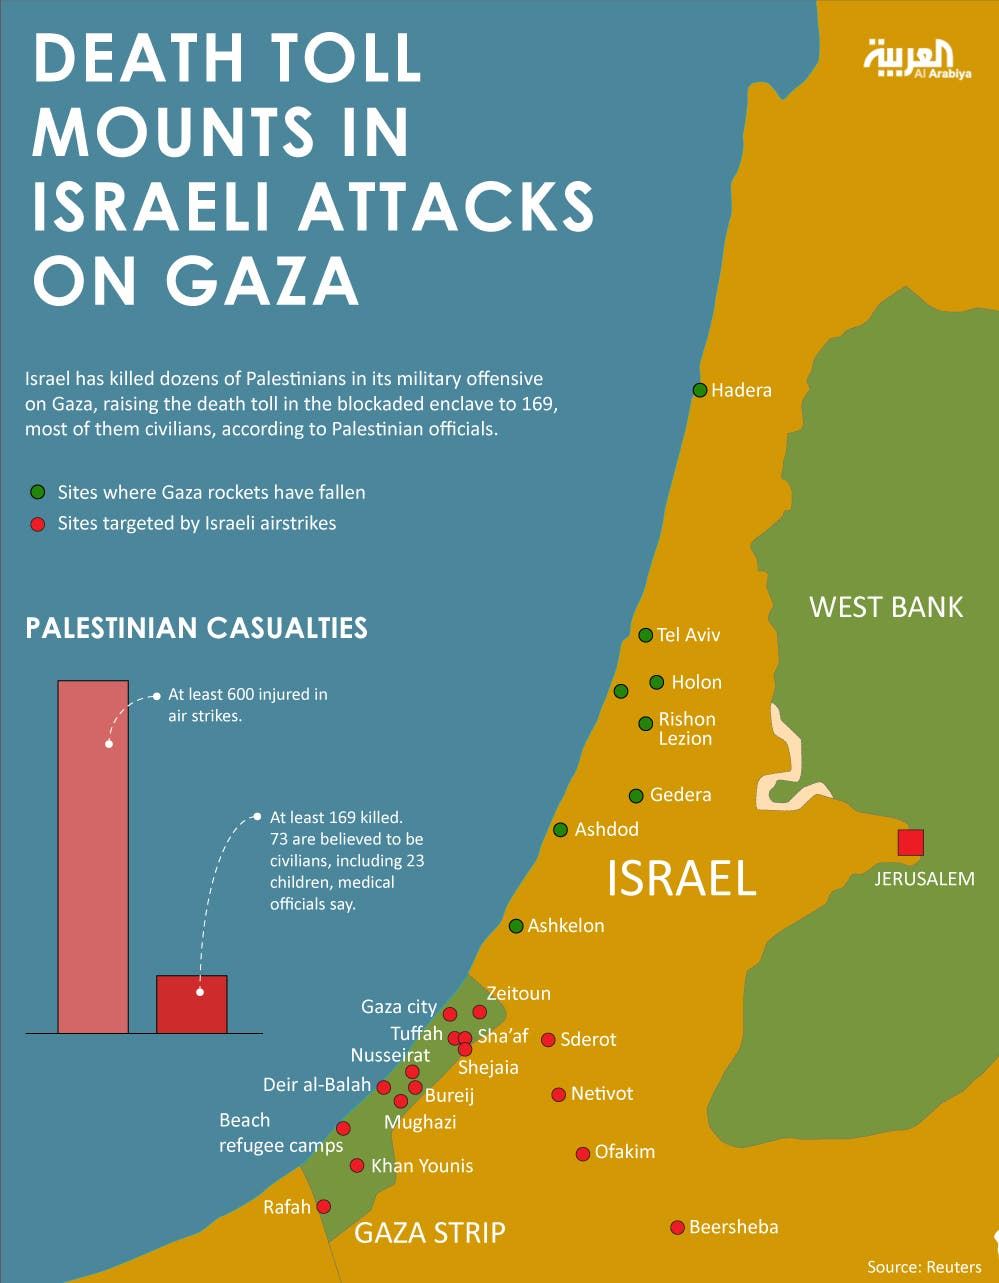 Infographic: Death toll mounts in Israeli attacks on Gaza